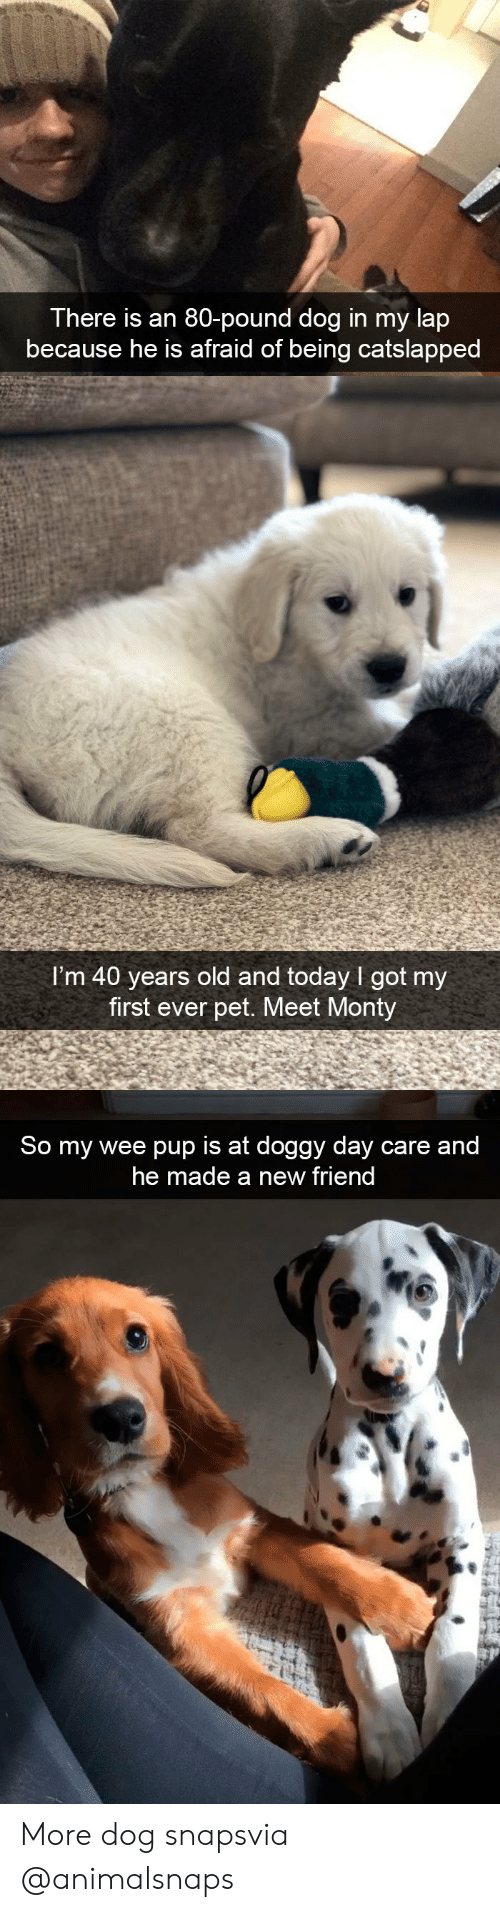 monty: There is an 80-pound dog in my lap  because he is afraid of being catslapped   I'm 40 years old and today I got my  first ever pet. Meet Monty   So my wee pup is at doggy day care and  he made a new friend More dog snapsvia @animalsnaps